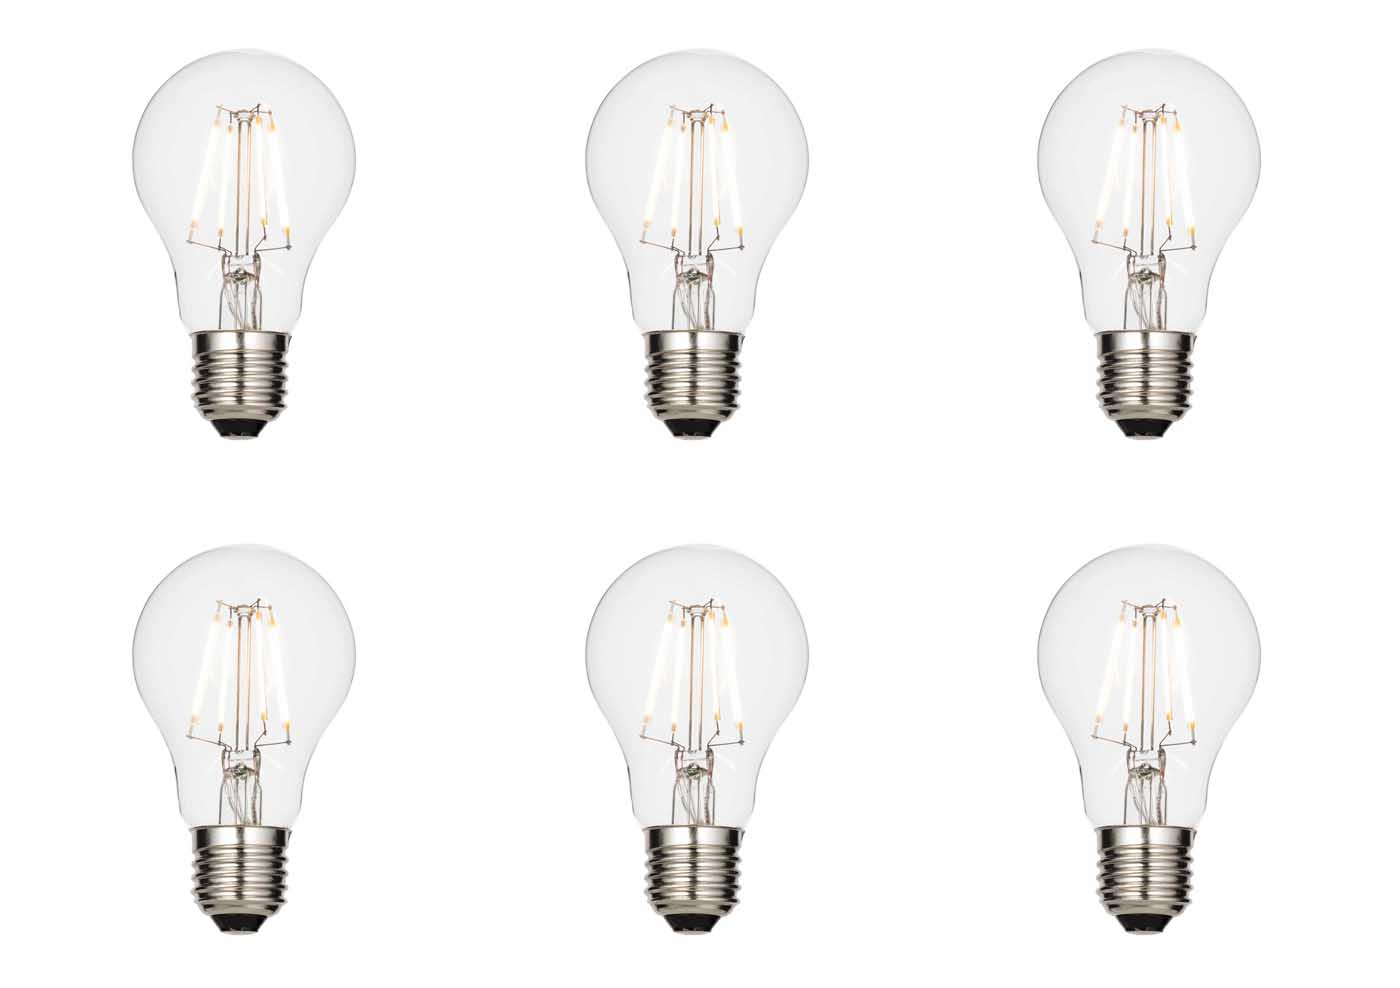 6 X Saxby E27 Led Light Bulb Filament Gls Dimmable 4 3w